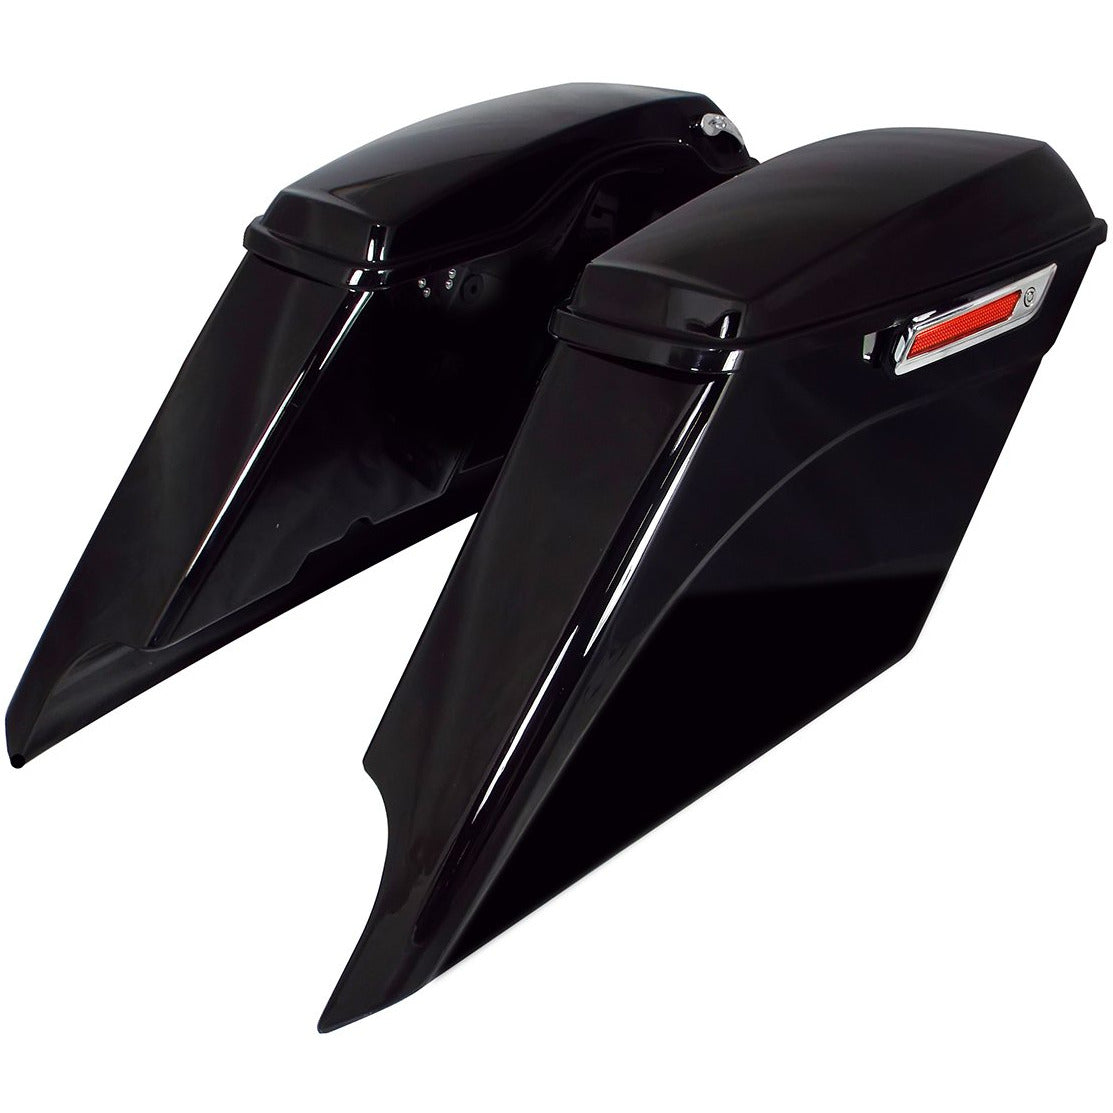 Bagger Brothers Saddlebag Complete Extended Kit 5 Down 5 Out Dual exhaust cut-outs Fits 2014-2020 Harley-Davidson FL Models